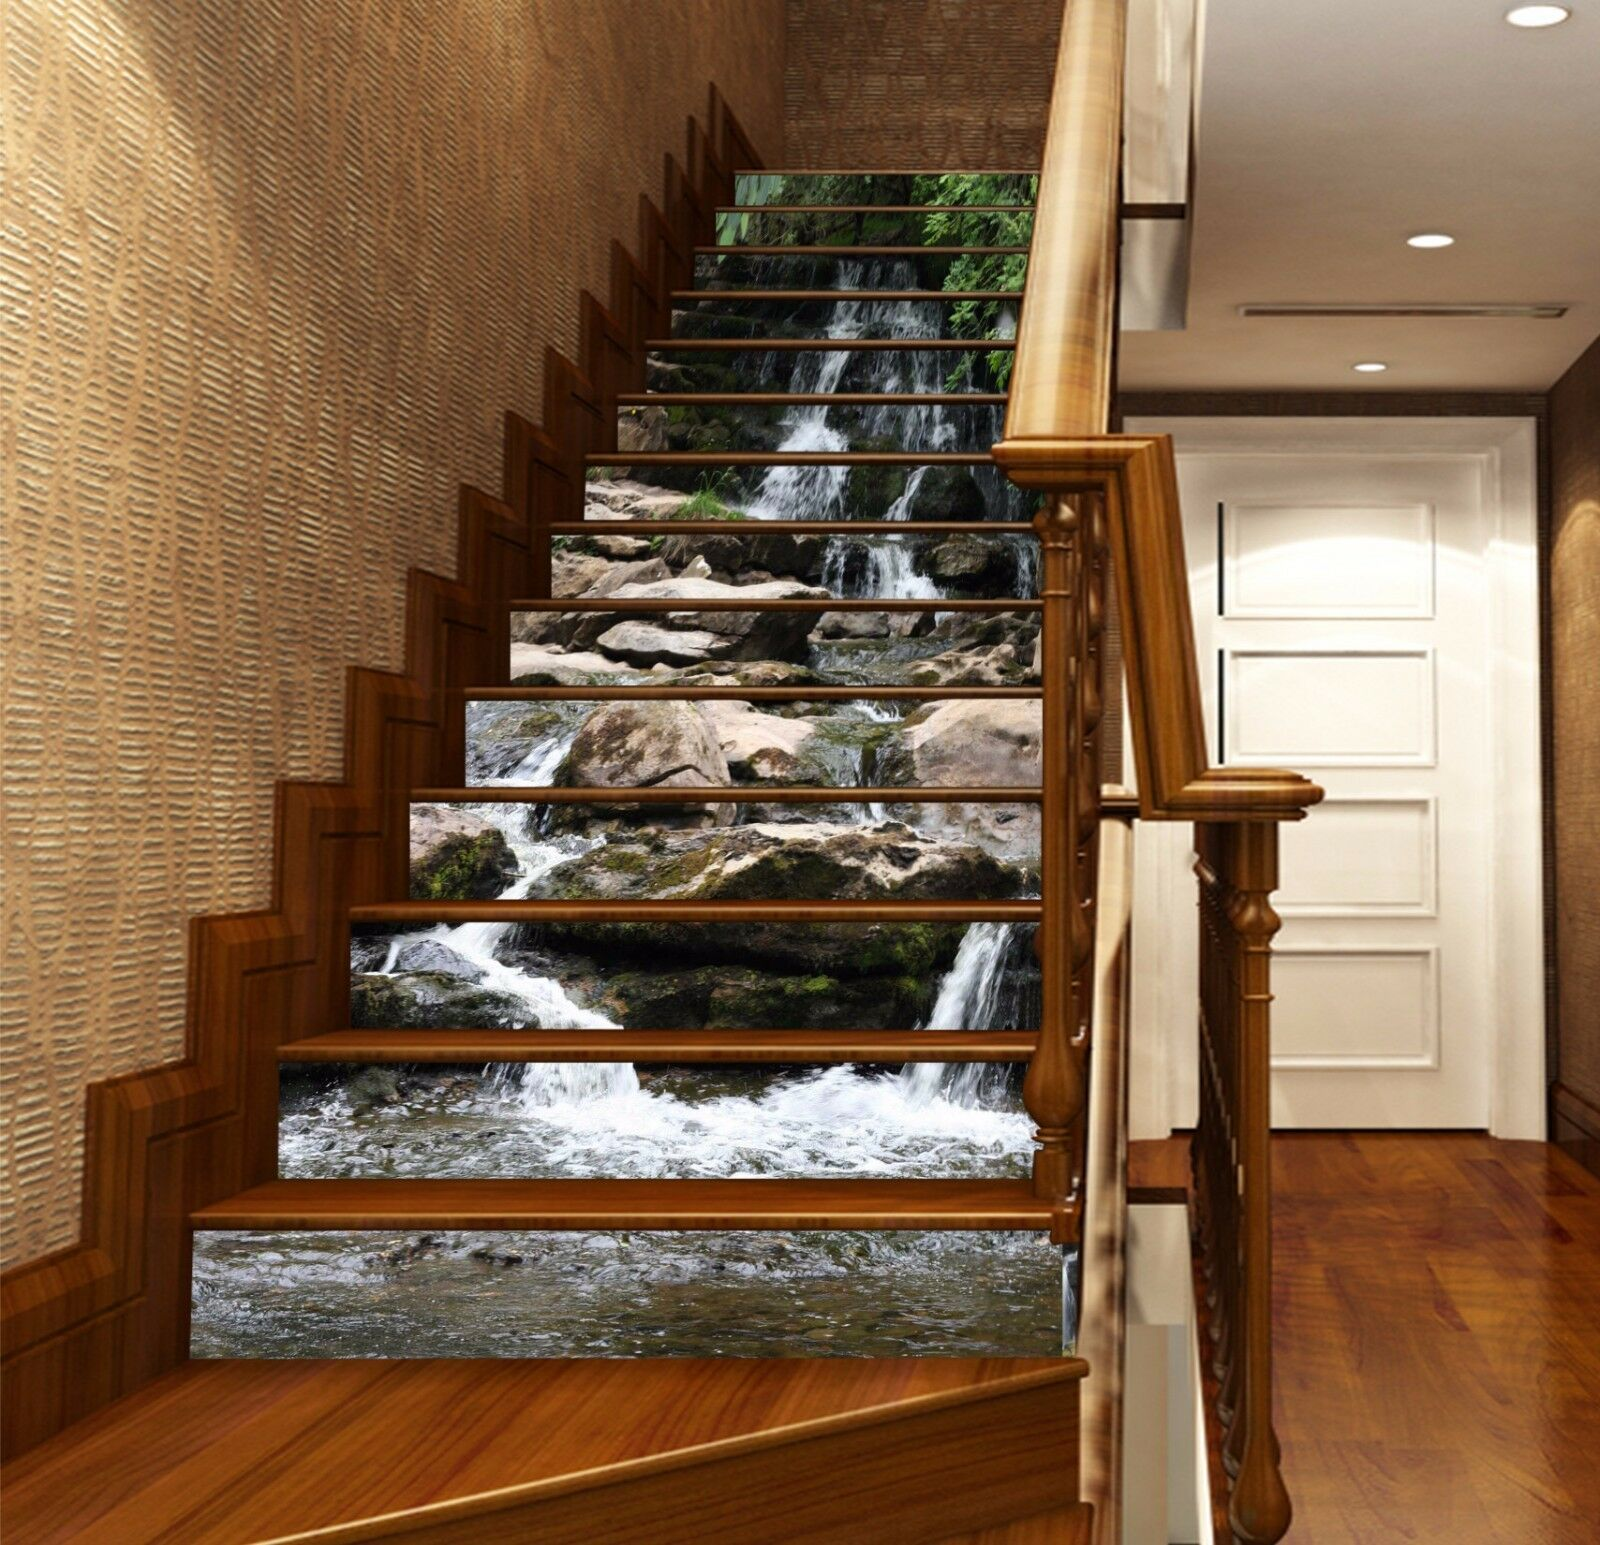 Creek flows 230 stairs risers photo mural vinyl decal wallpaper us decoration 3d ooikle3844 decals stickers vinyl art